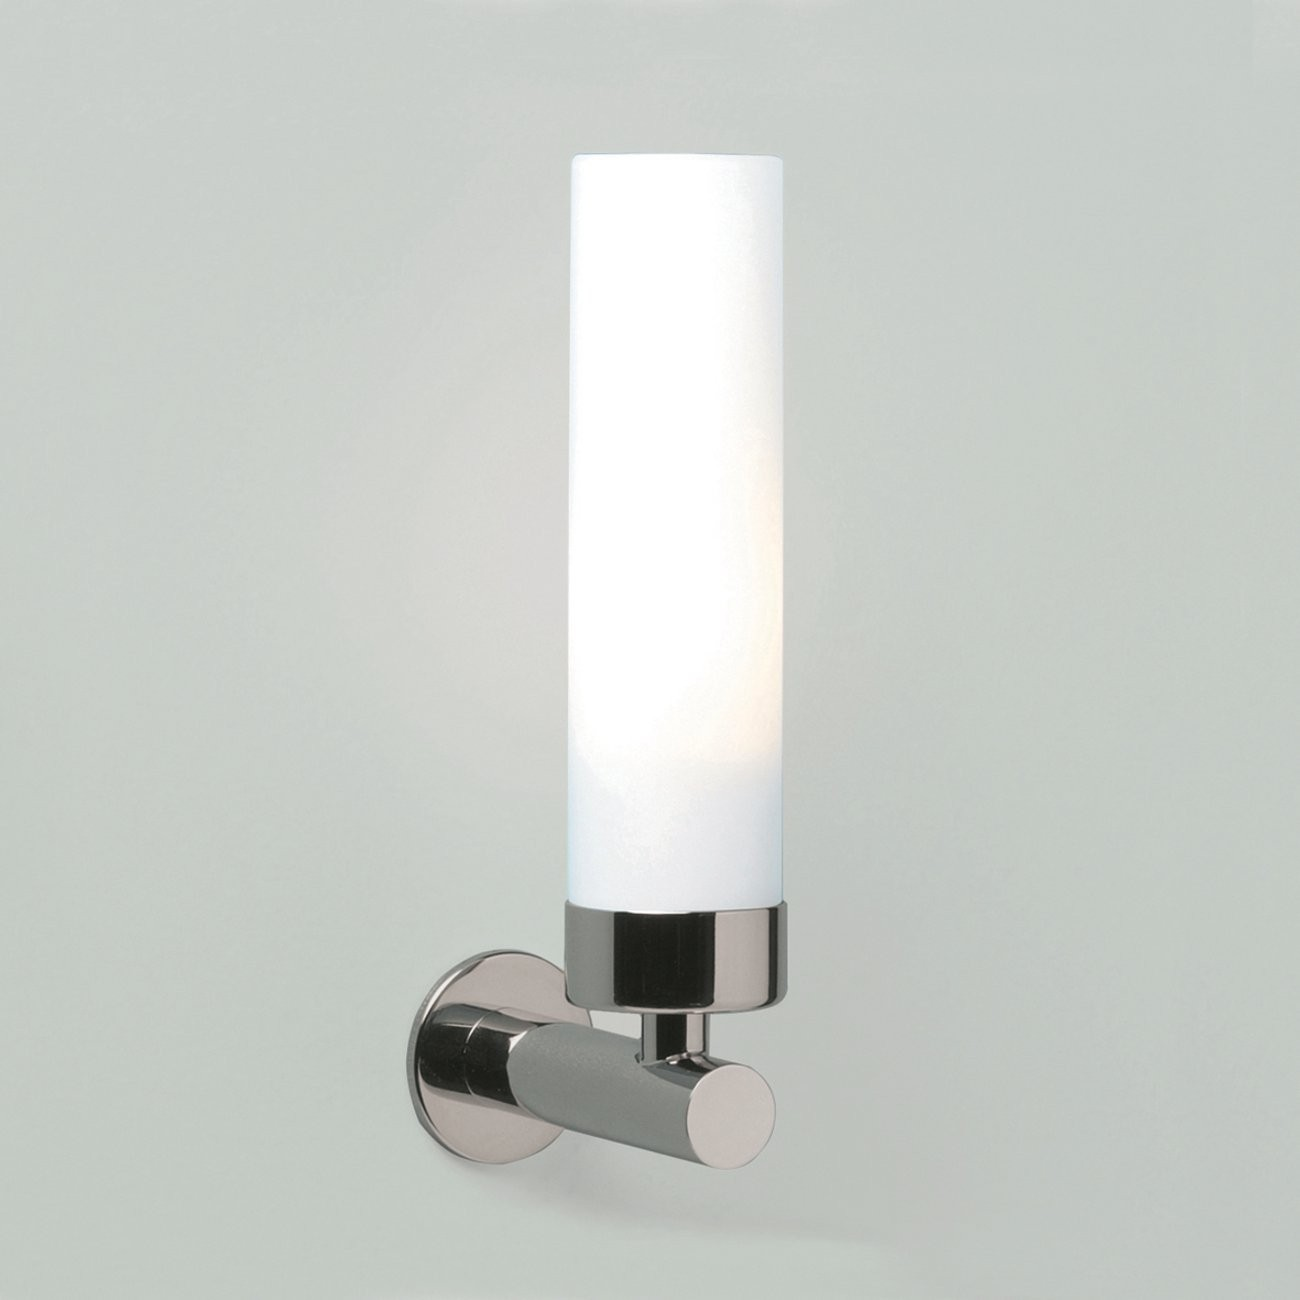 LED-Spiegellampe fürs Bad modern in Chrom und Glas matt IP44 TUBE LED